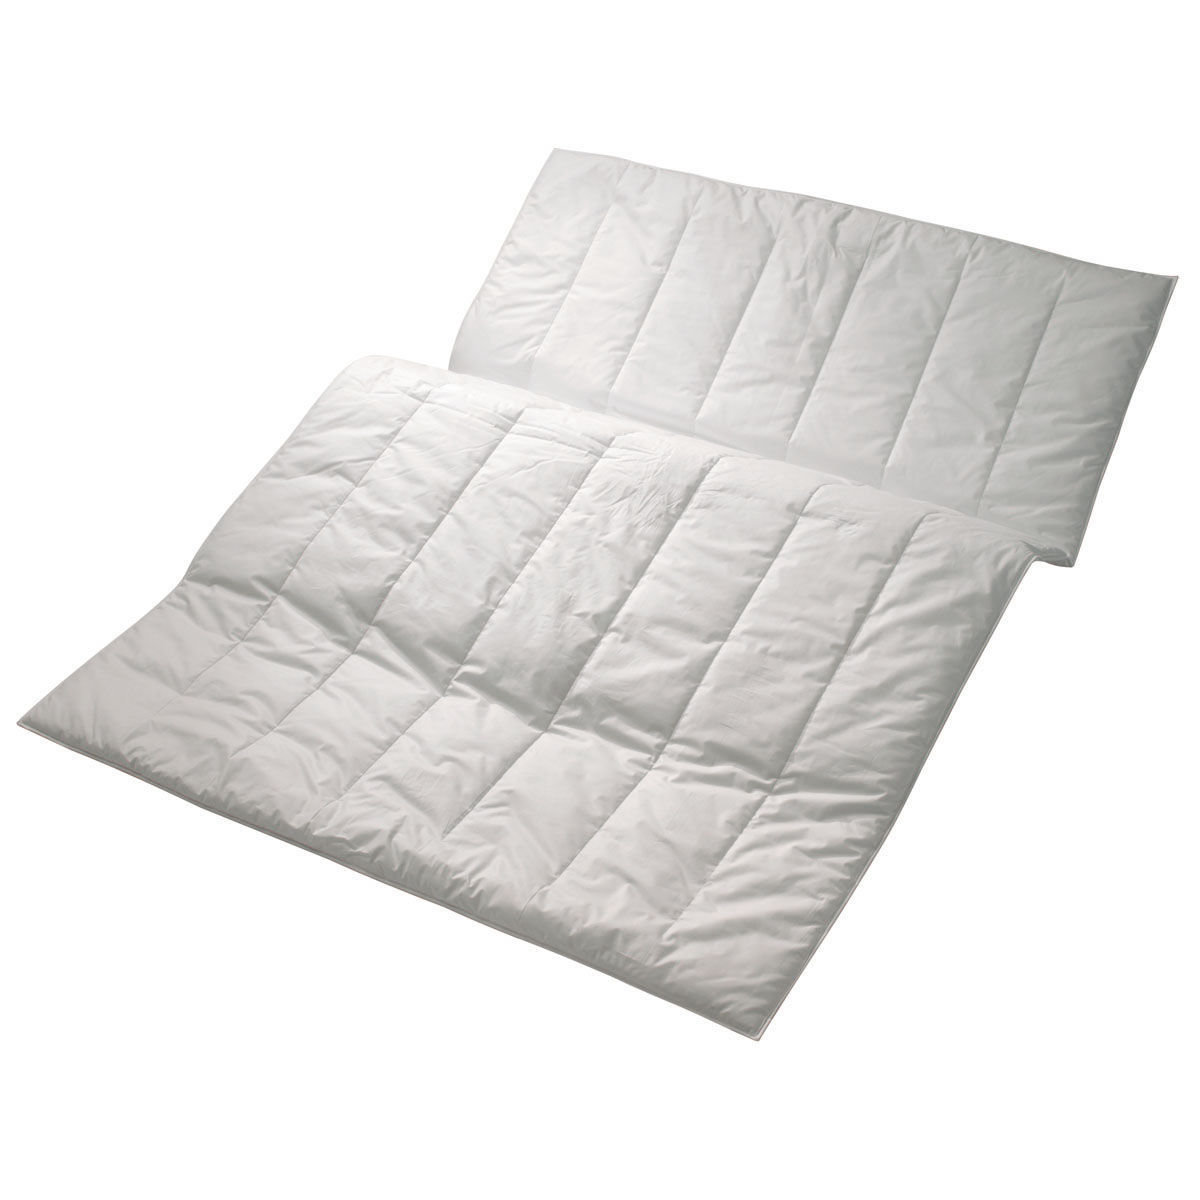 Centa-Star Duo-Steppbett ´´Energy´´, 2x 400 g, 155x220 cm